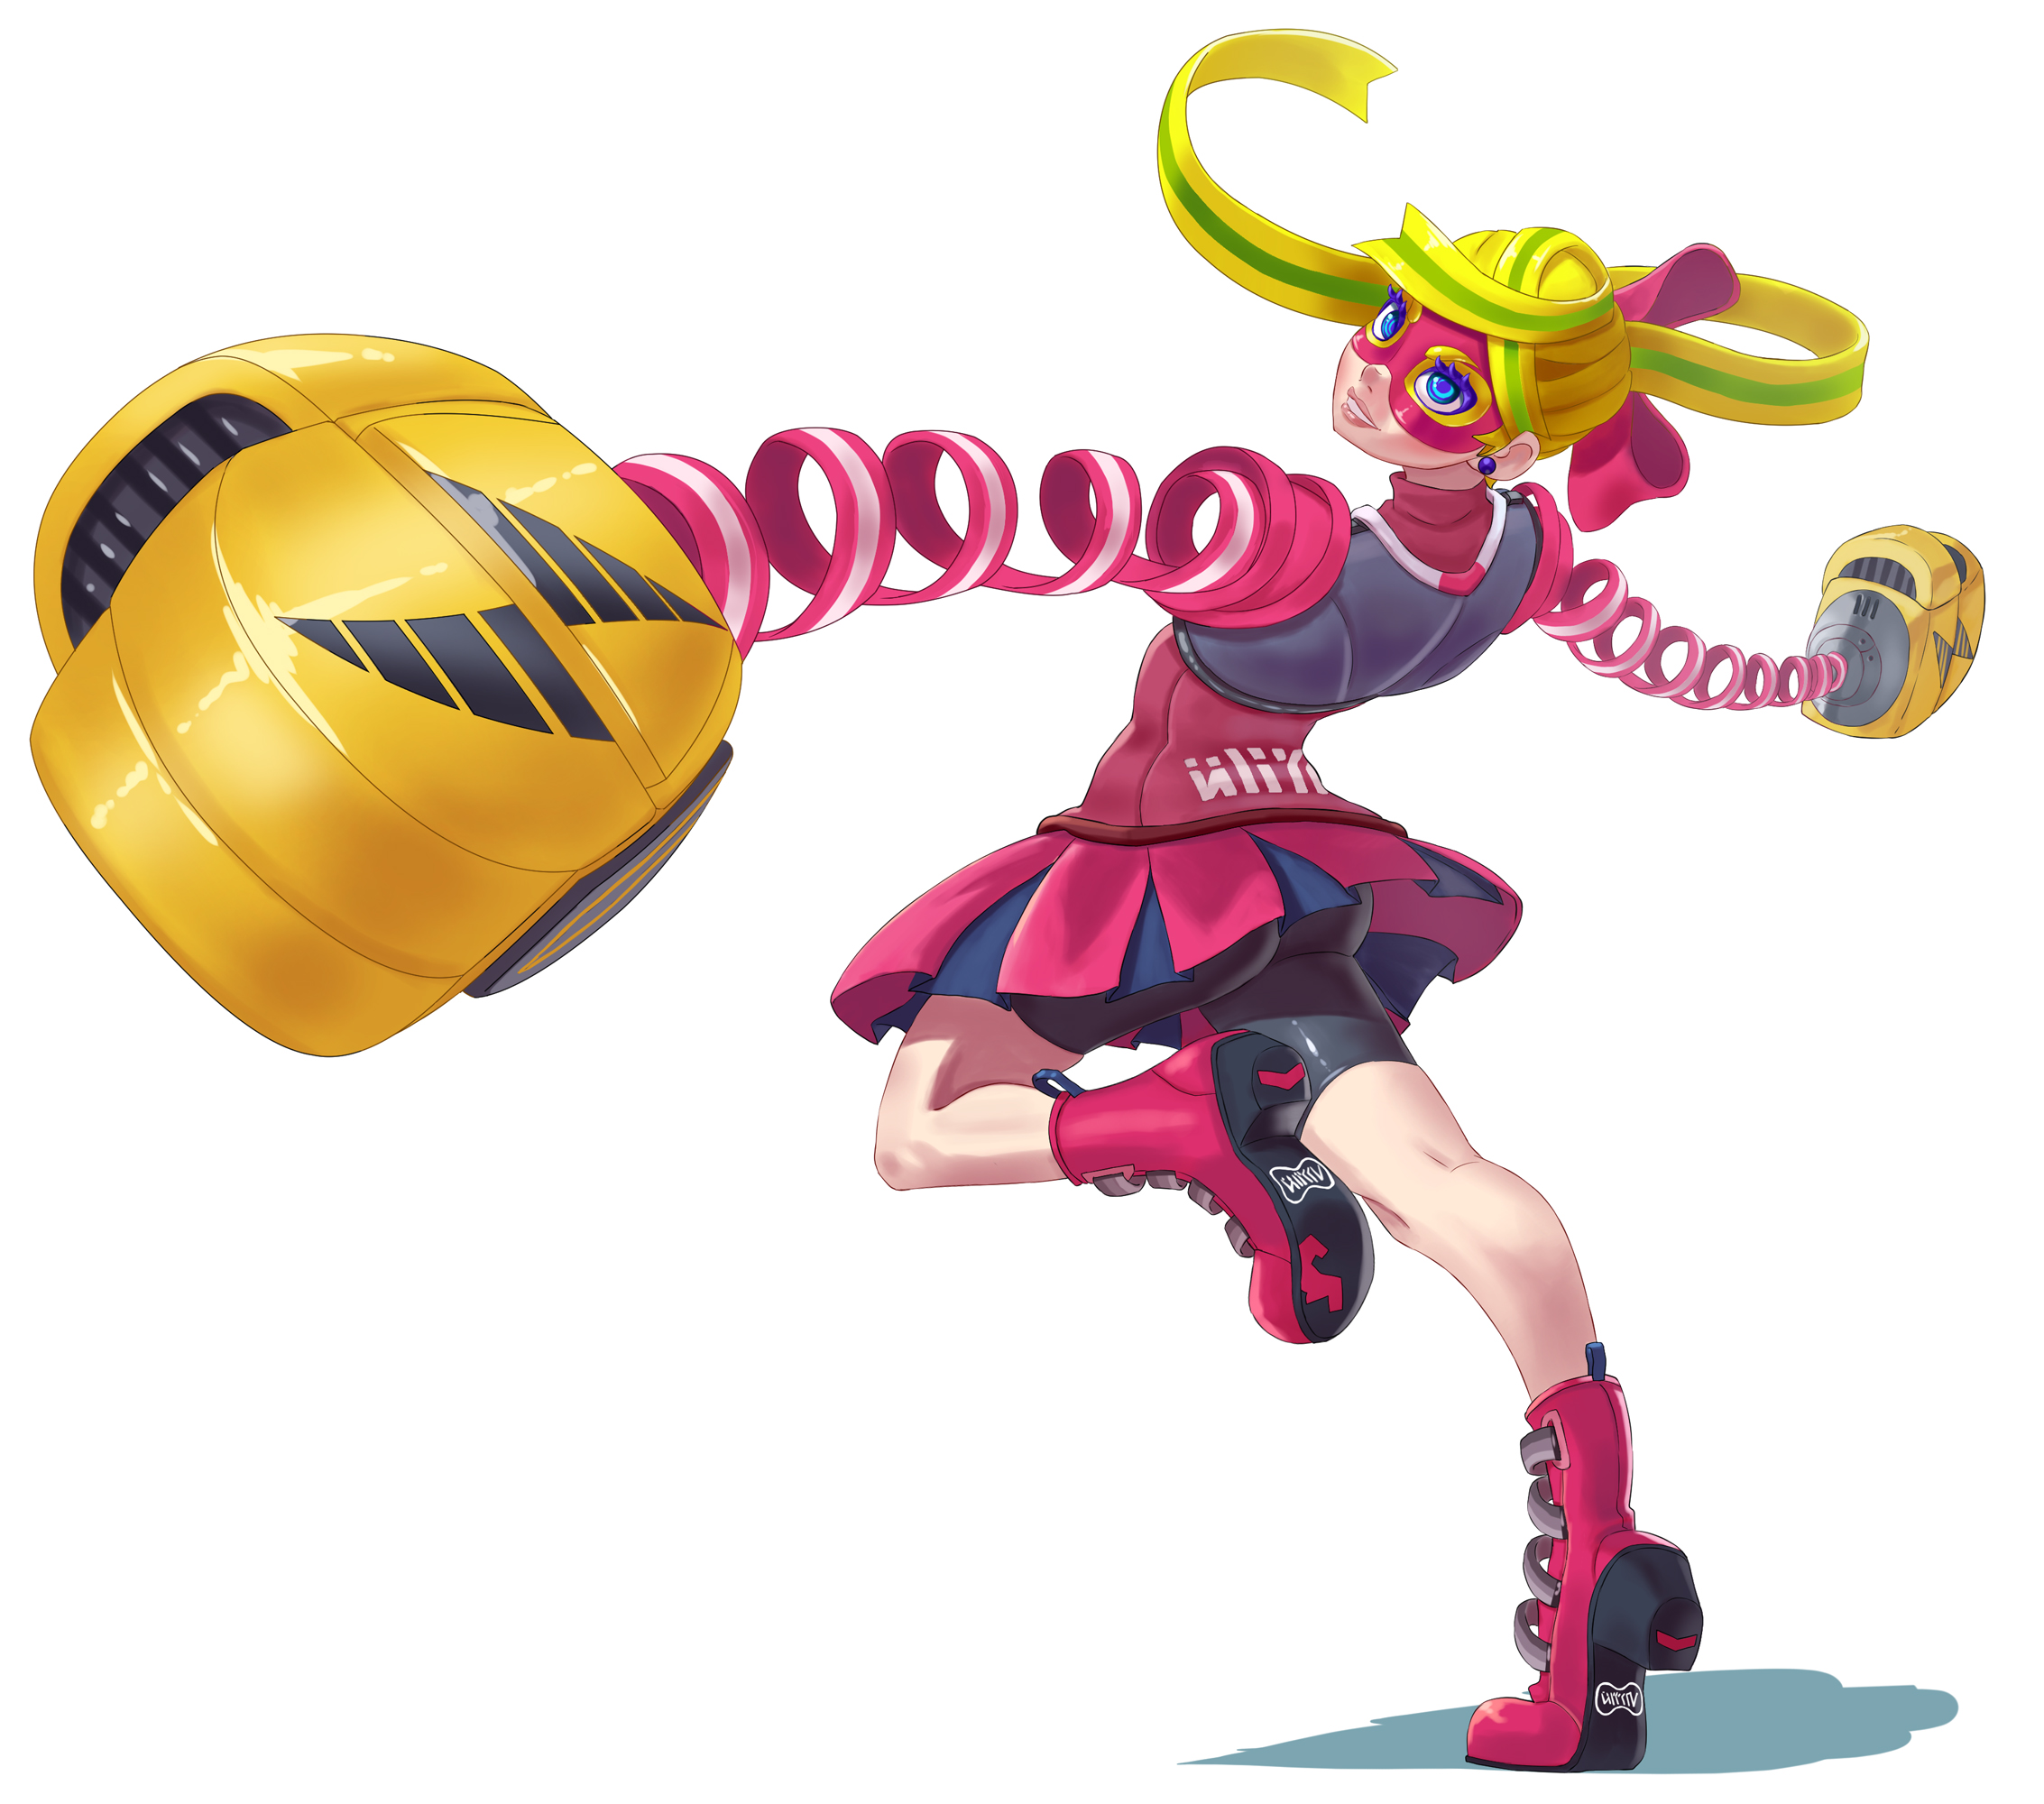 Ribbon Girl from ARMS by Comadreja